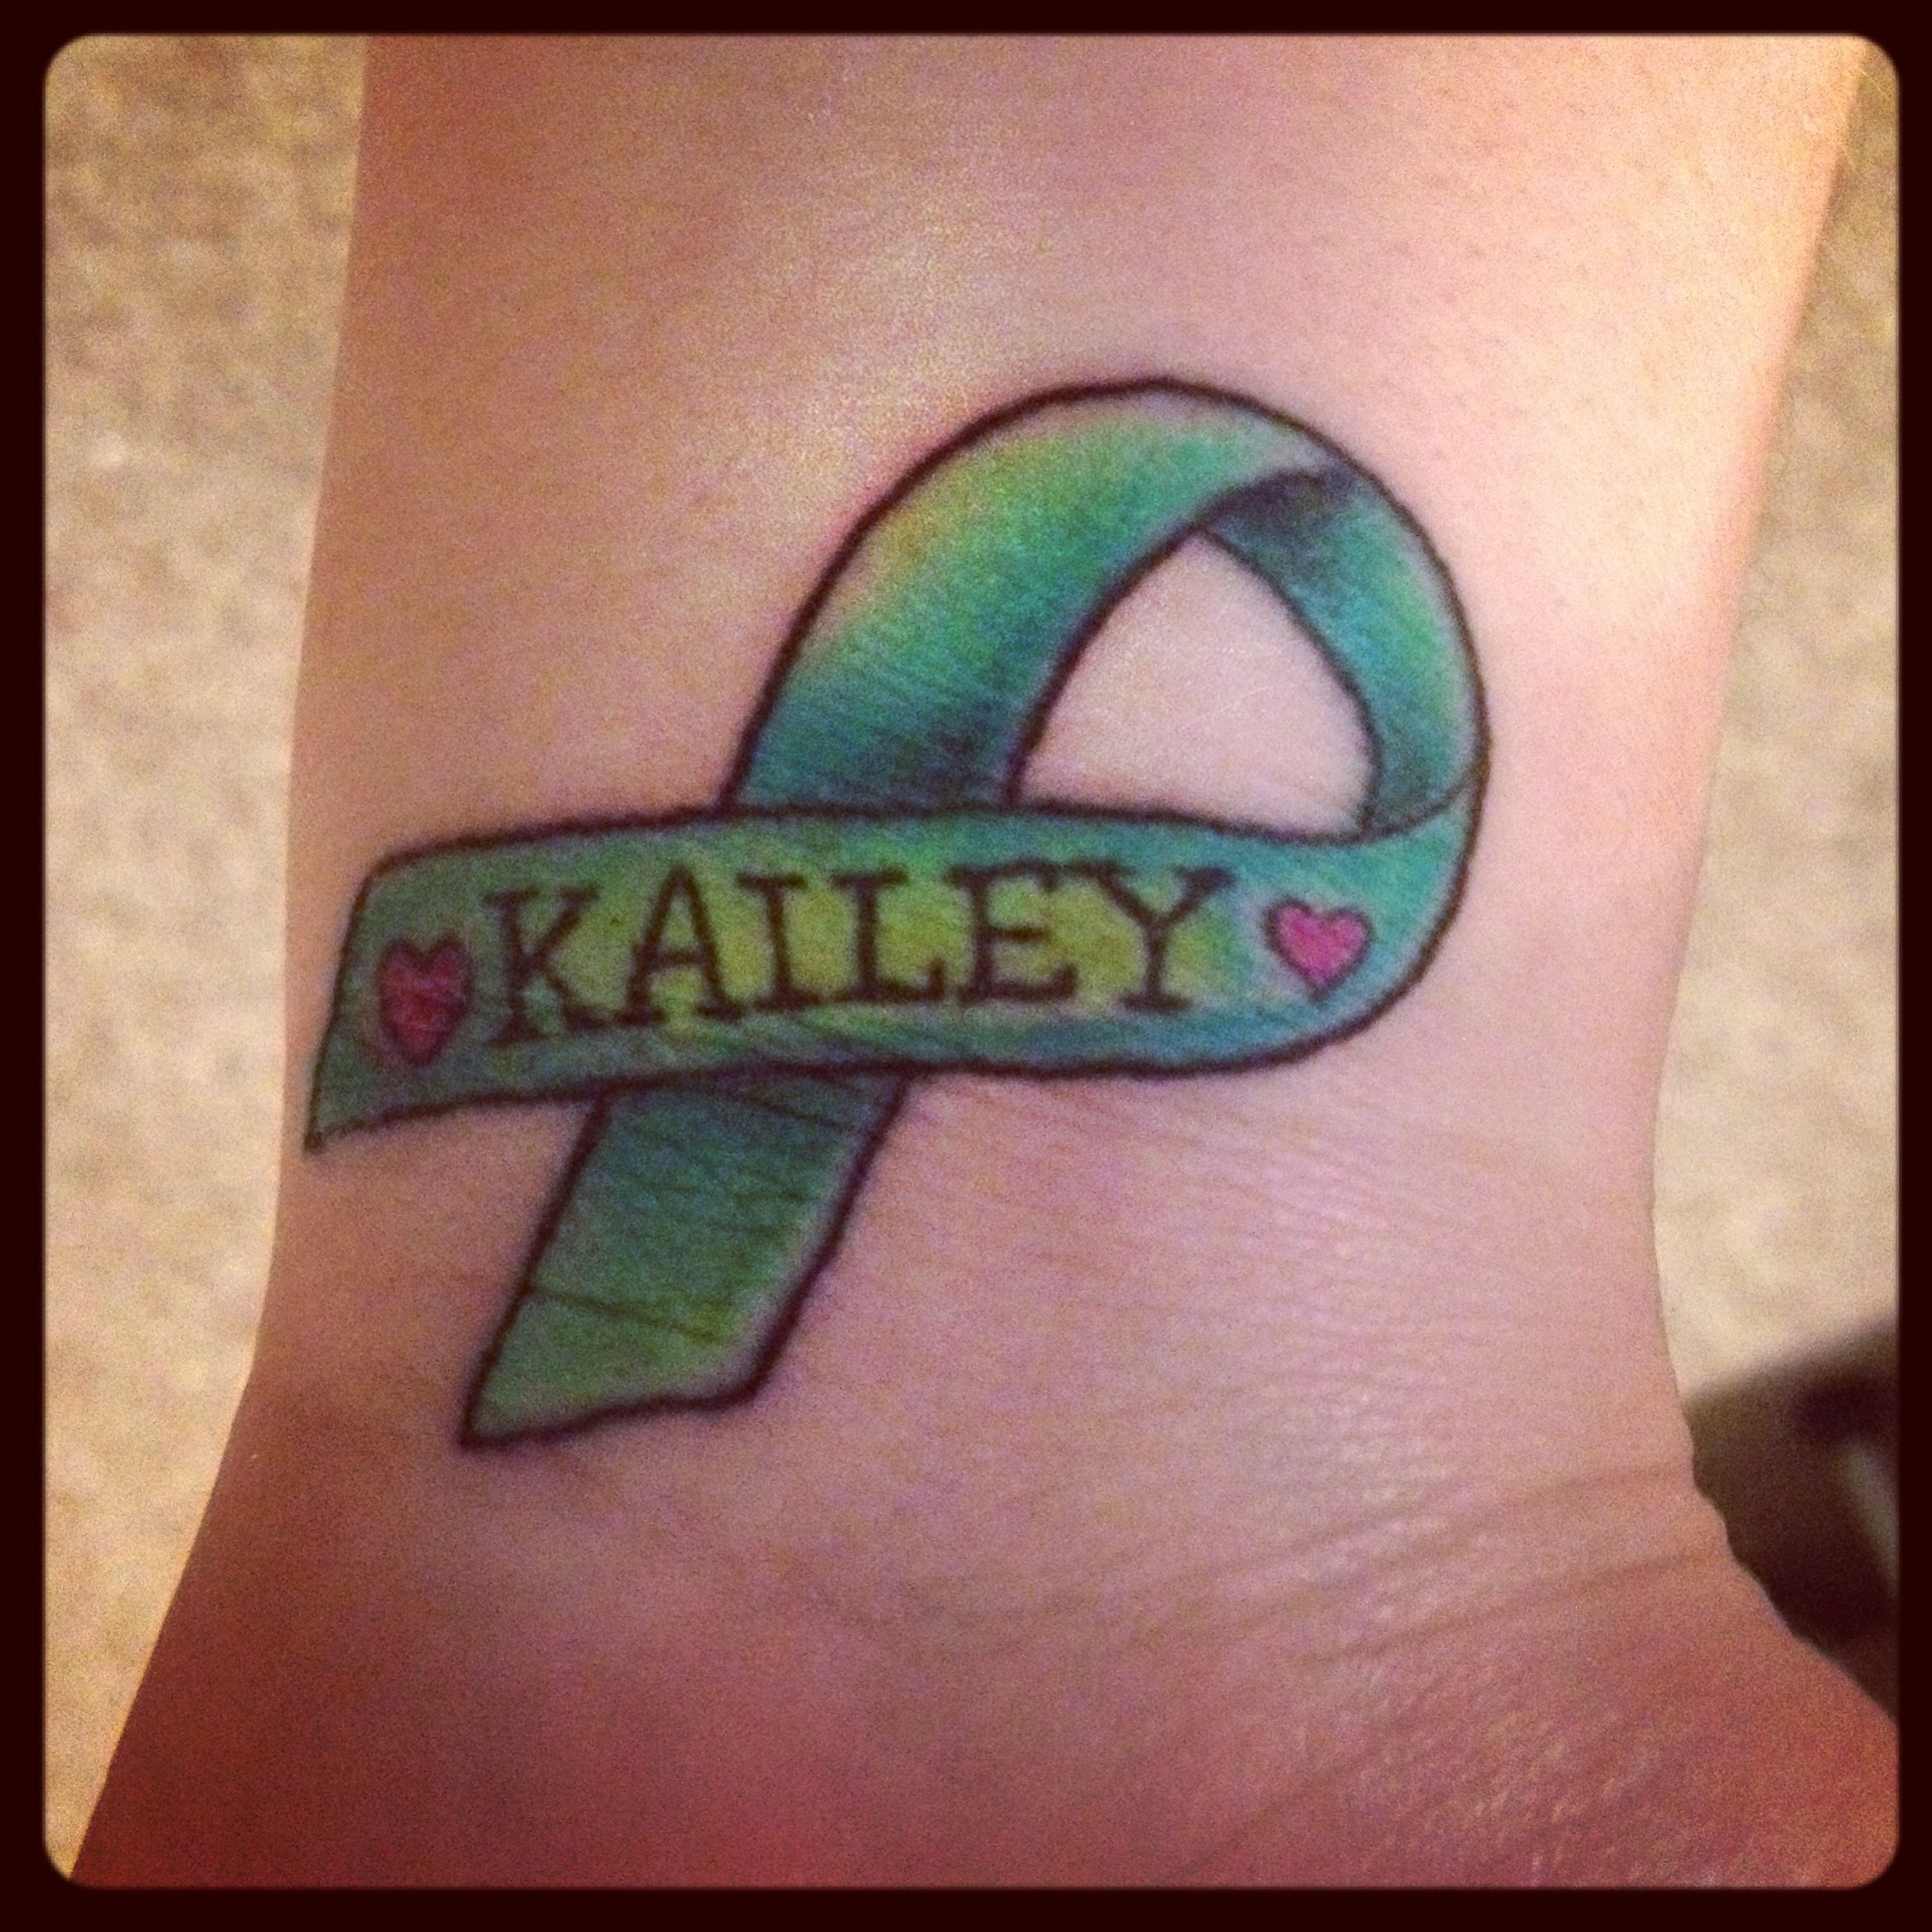 cerebral palsy awareness tattoo i have no tattoos but